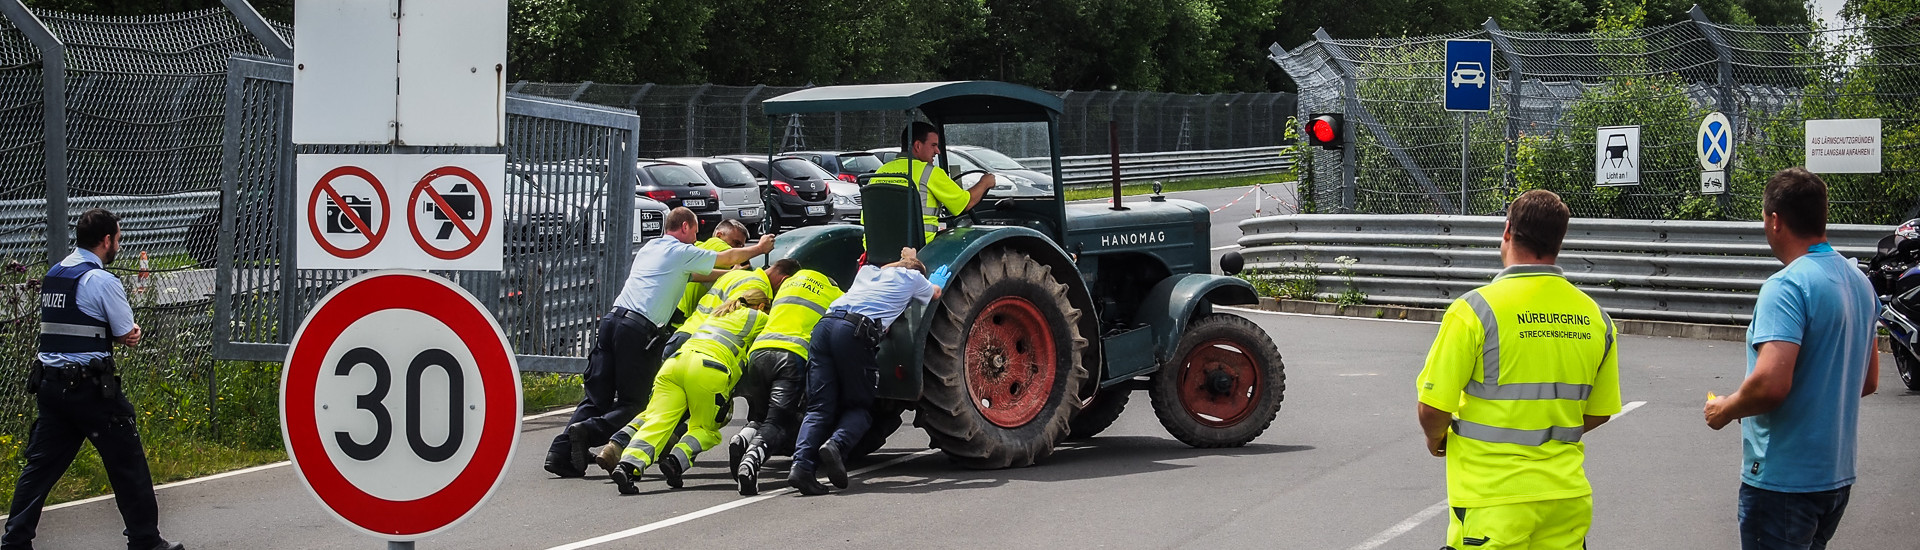 Marshalls and Polizei push the classic tractor out of the way